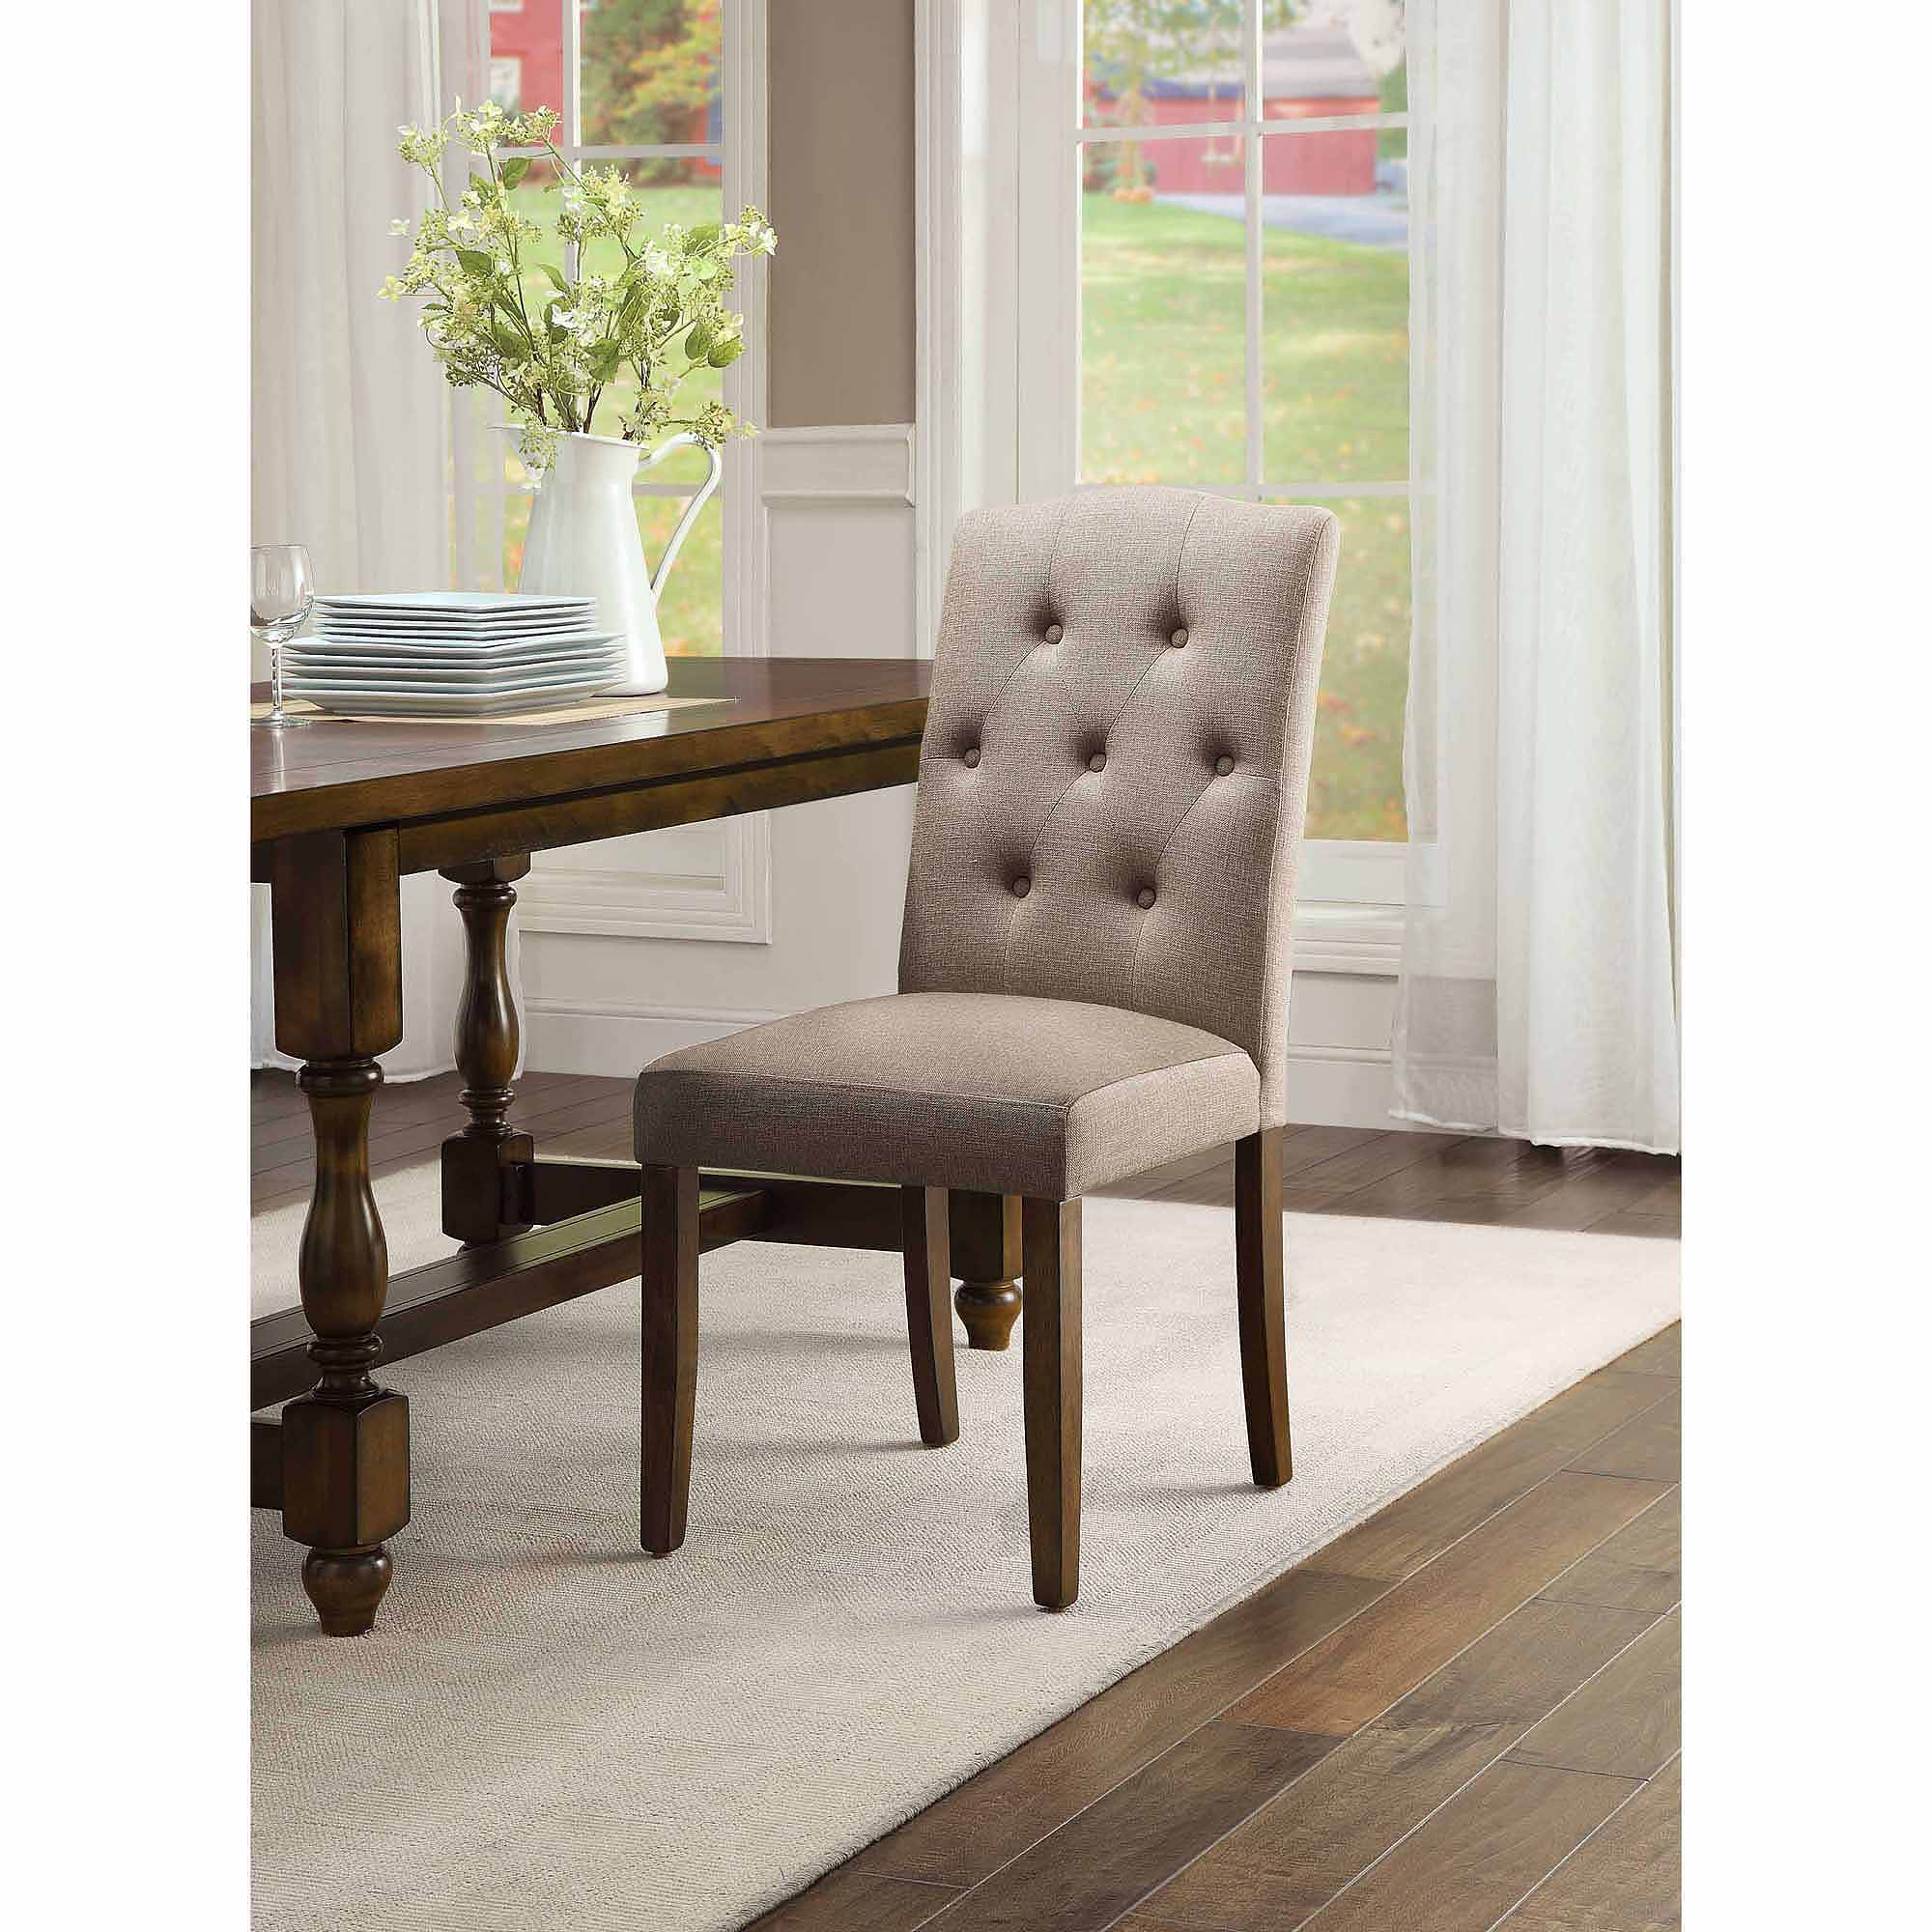 product oak in set sets of dining portland upholstered table chair living img